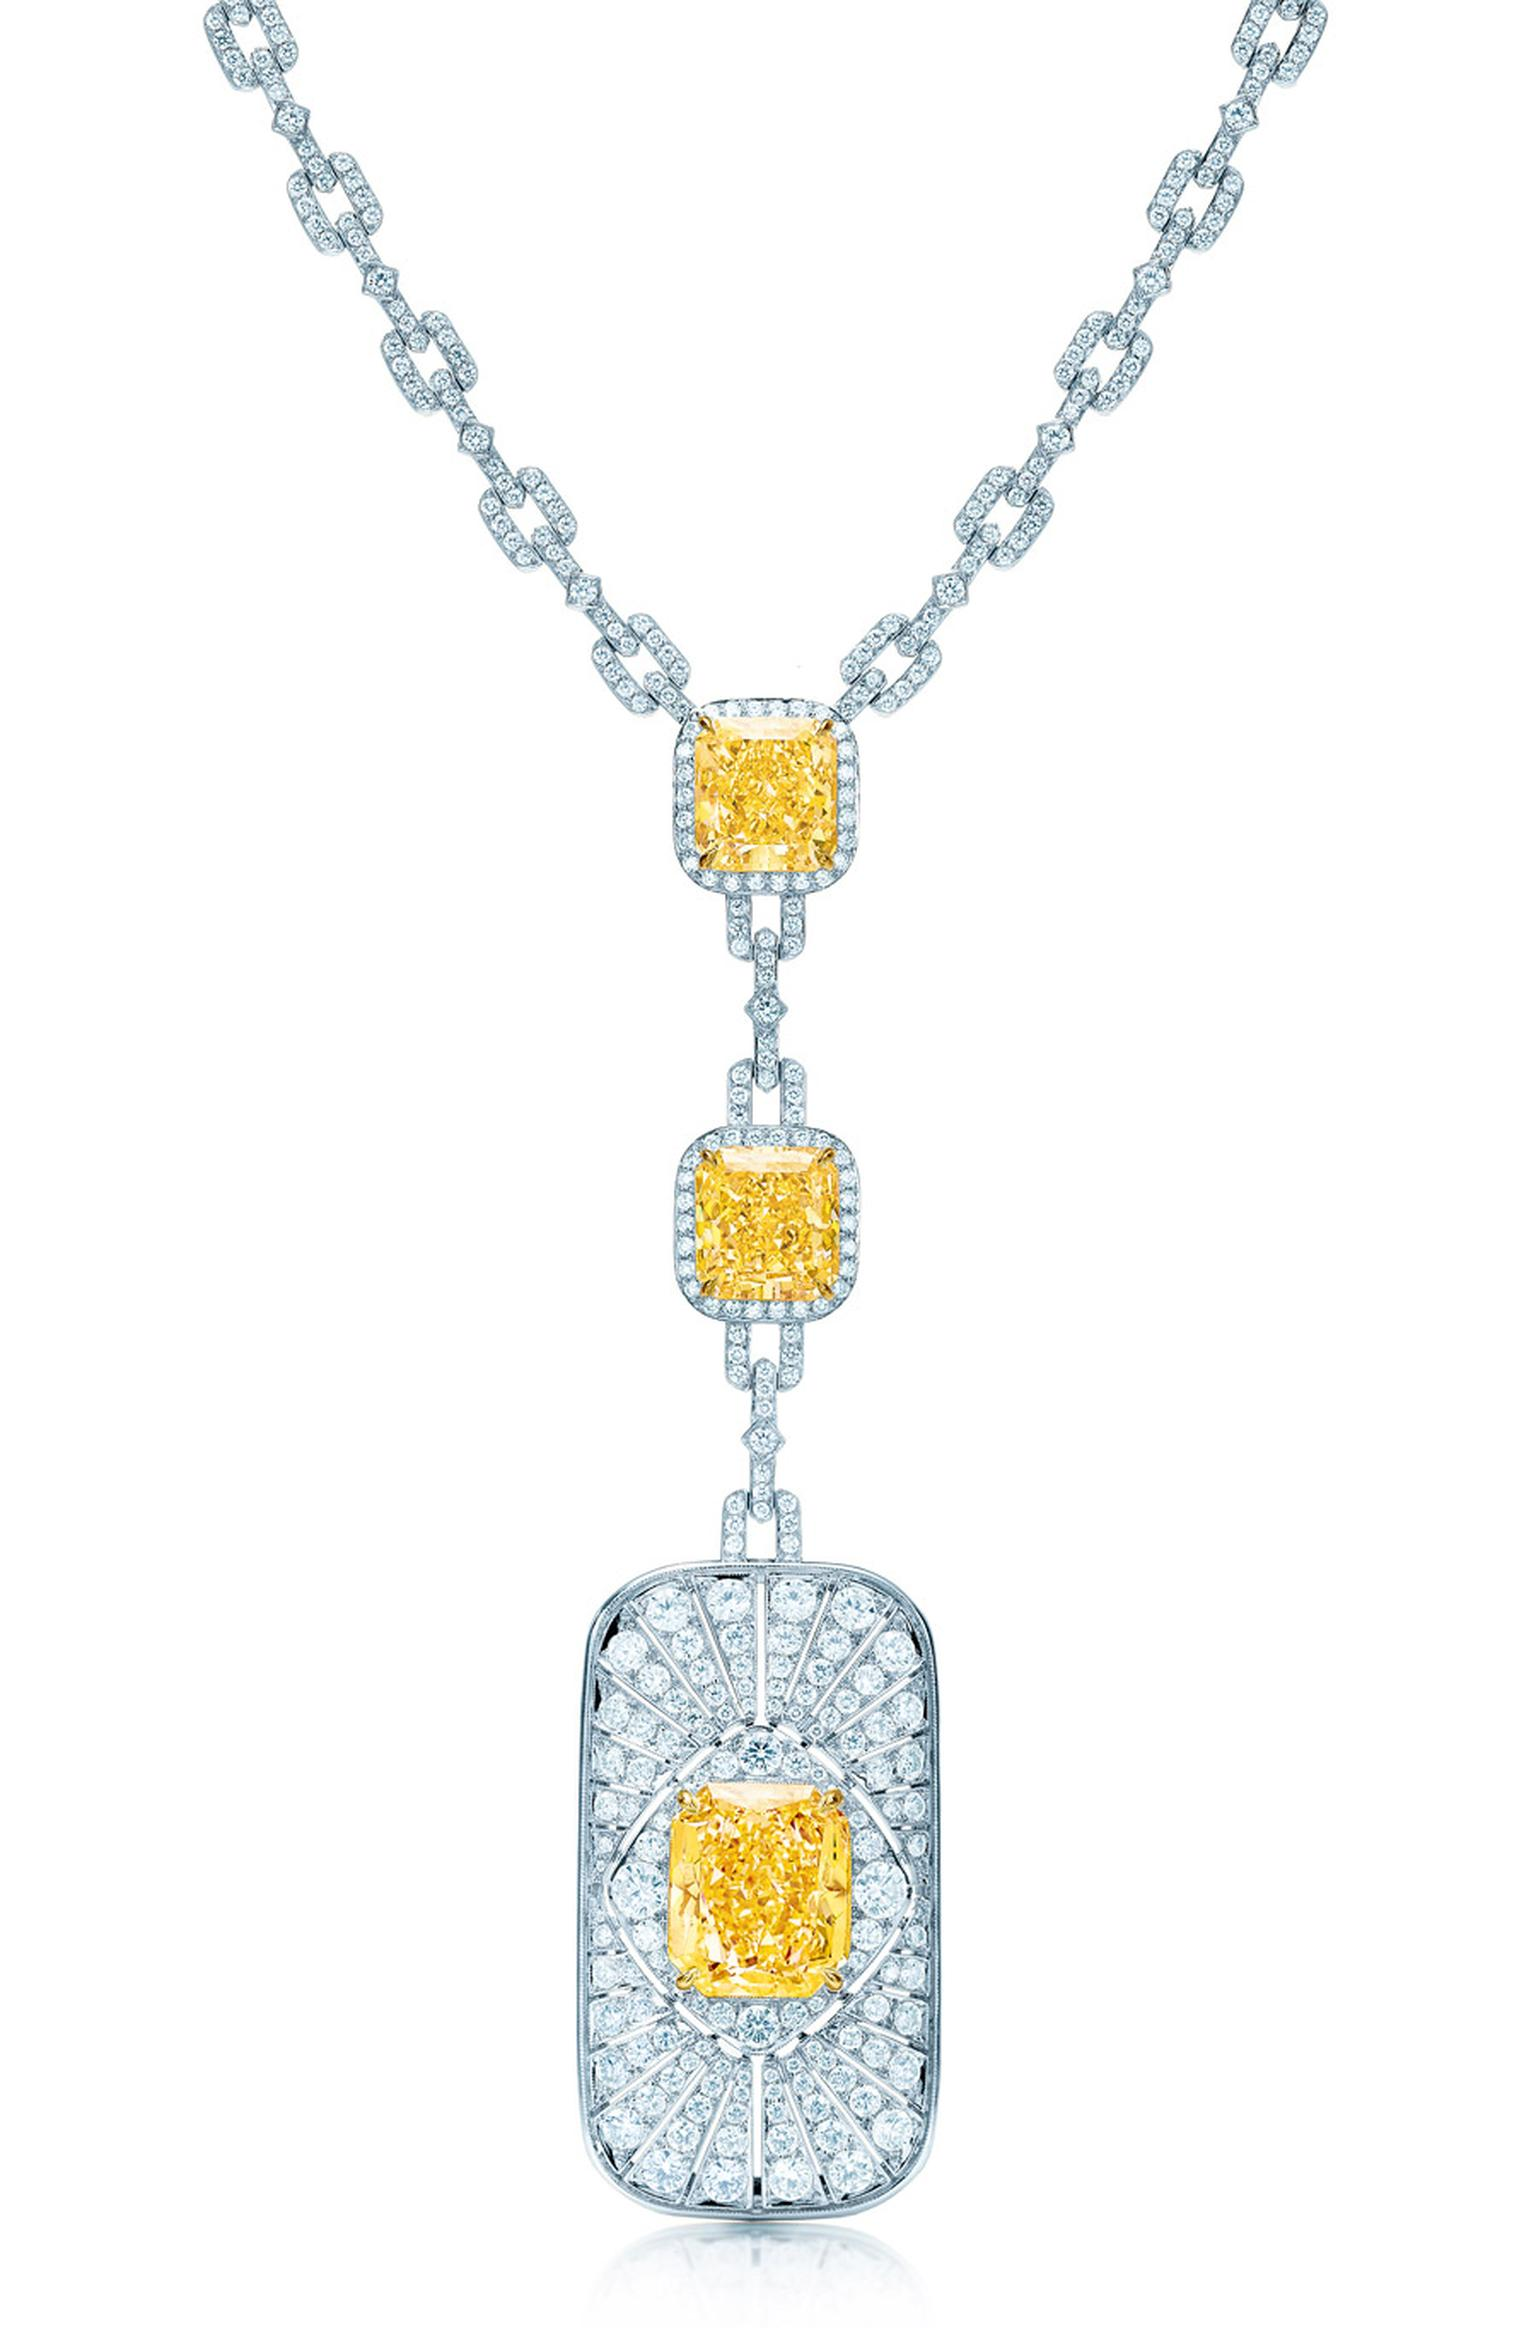 Masterpiece-Art-Deco-inspired-necklace-in-platinum-based-on-jewels-in-the-Tiffany-archives.jpg